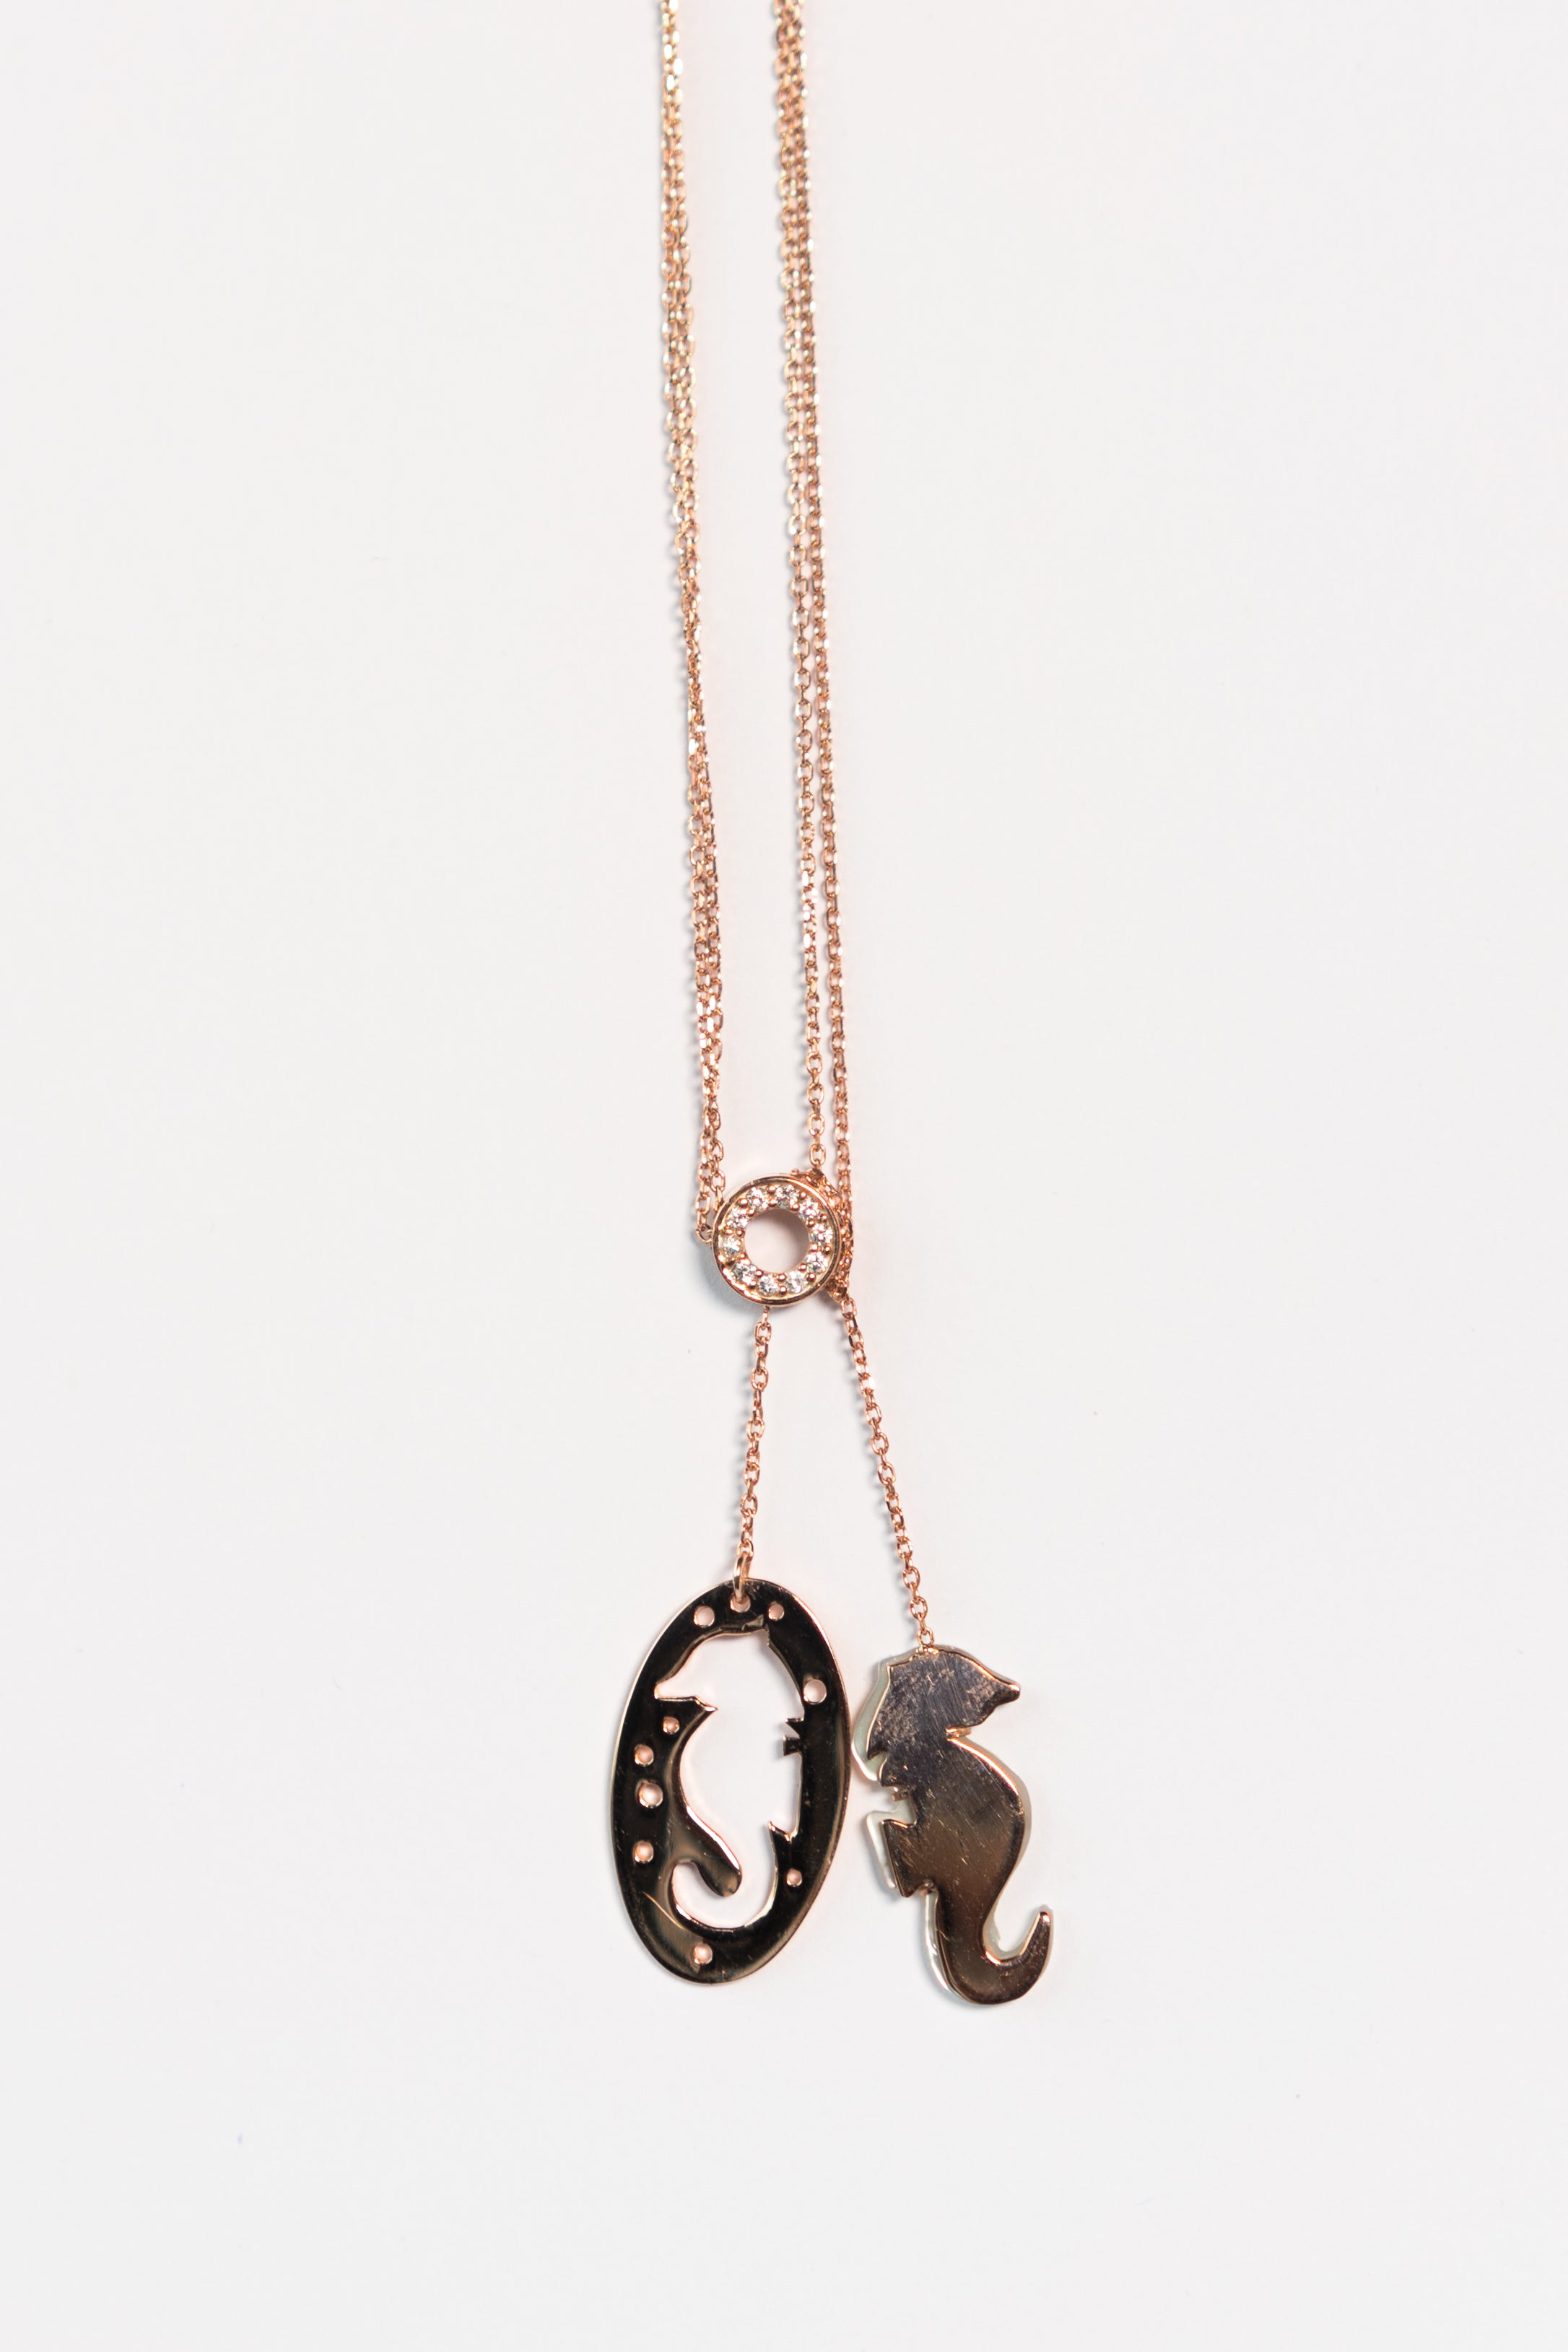 Mother of Pearl Seahorse Necklace The Glared